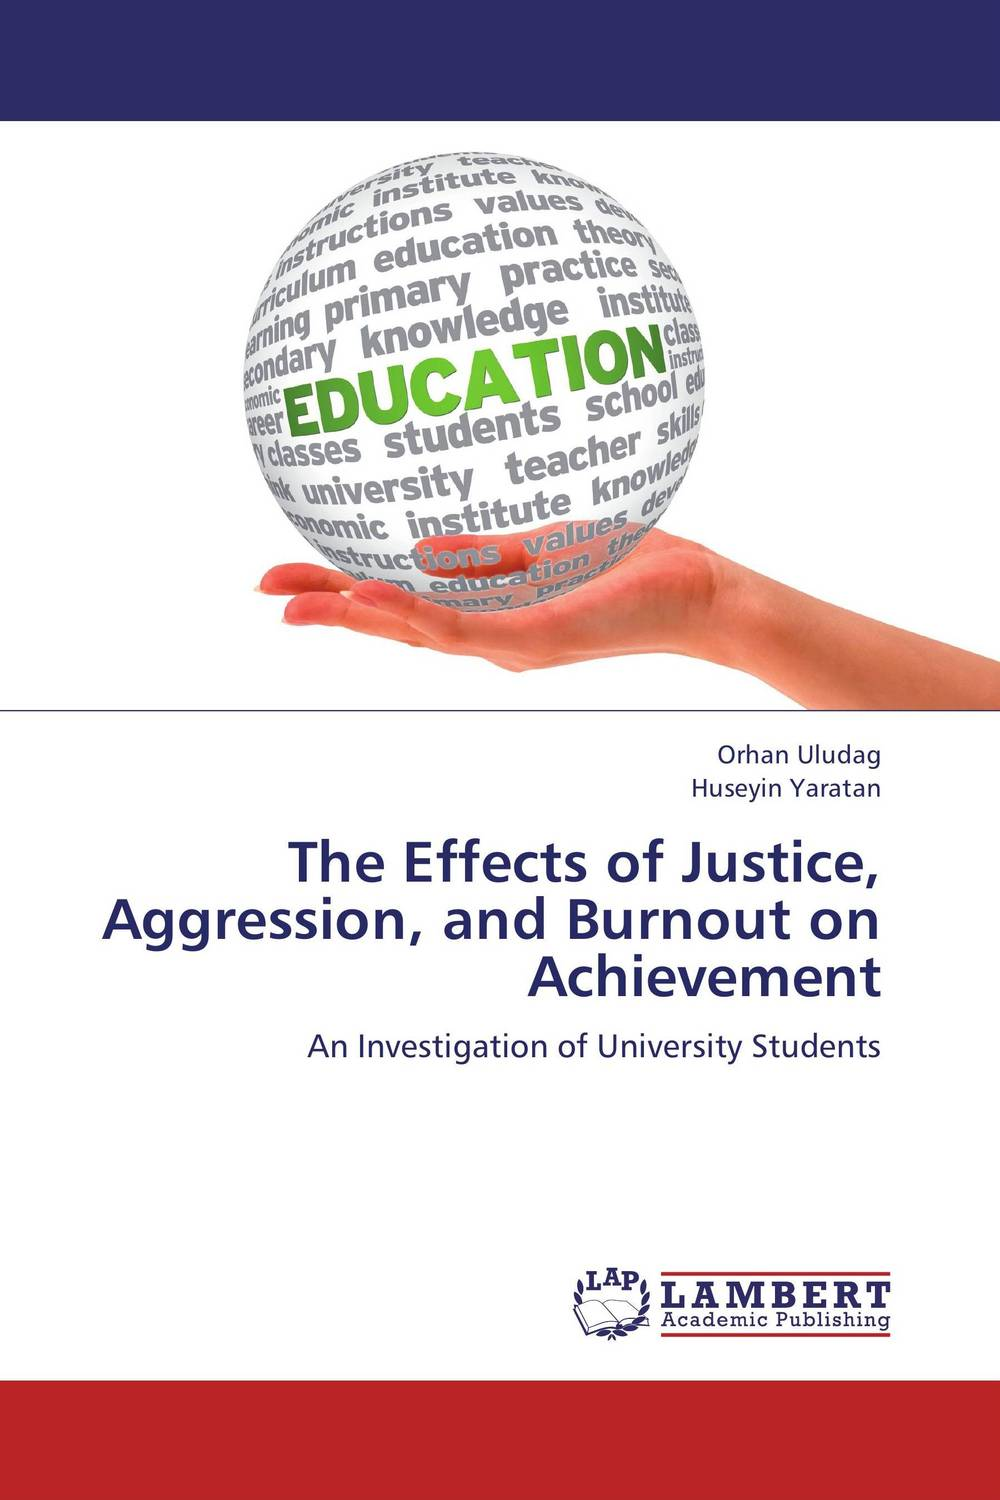 The Effects of Justice, Aggression, and Burnout on Achievement